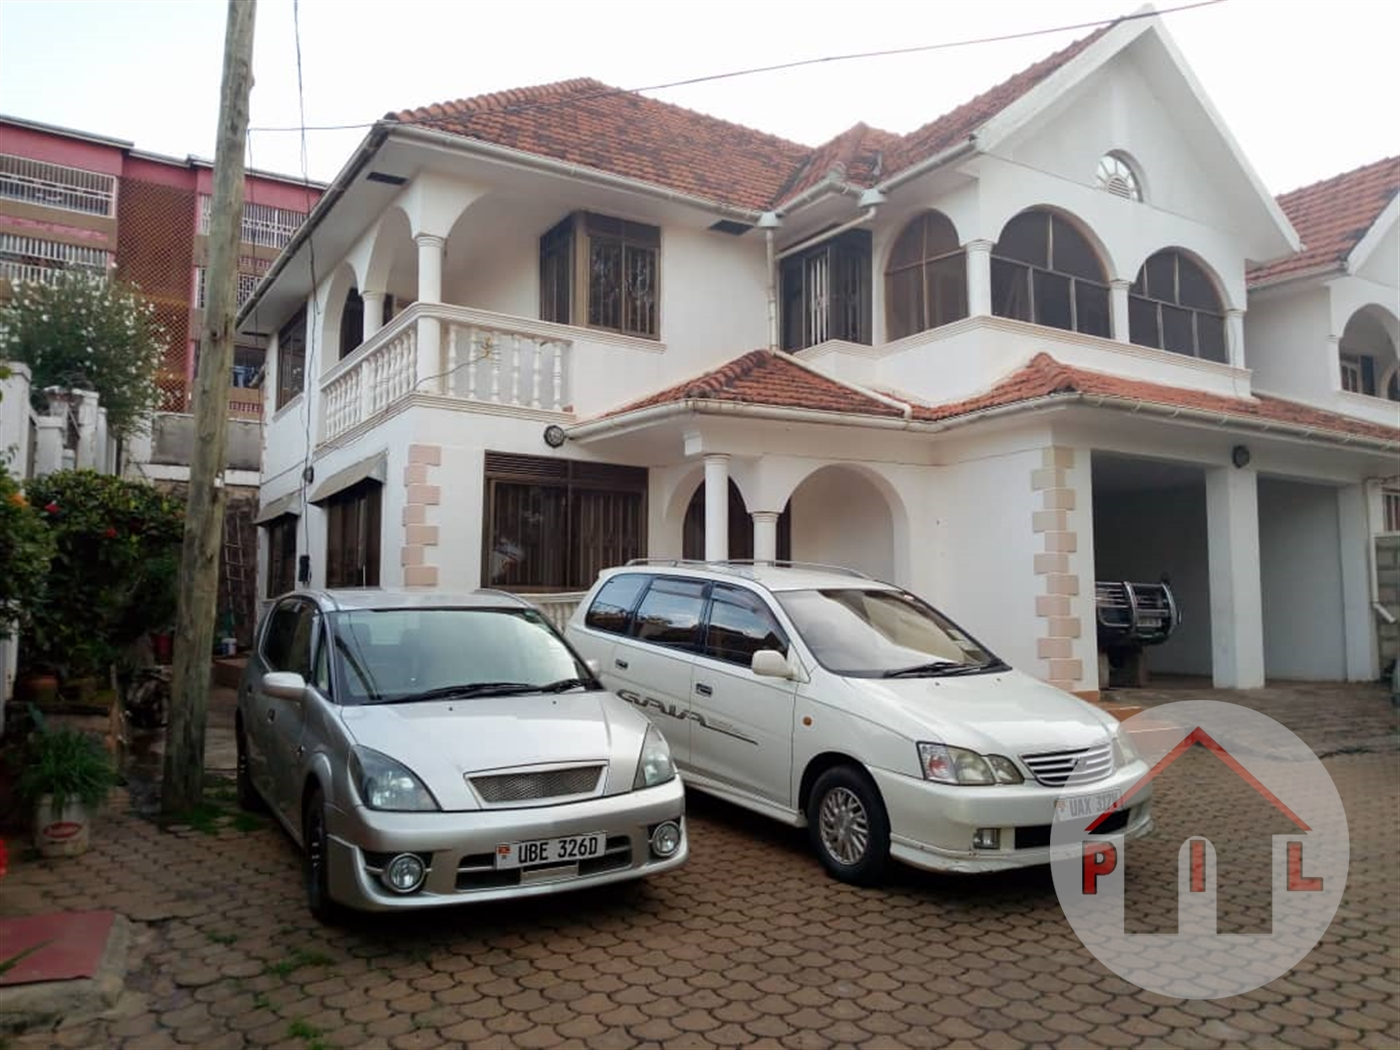 Storyed house for sale in Bugolobi Kampala